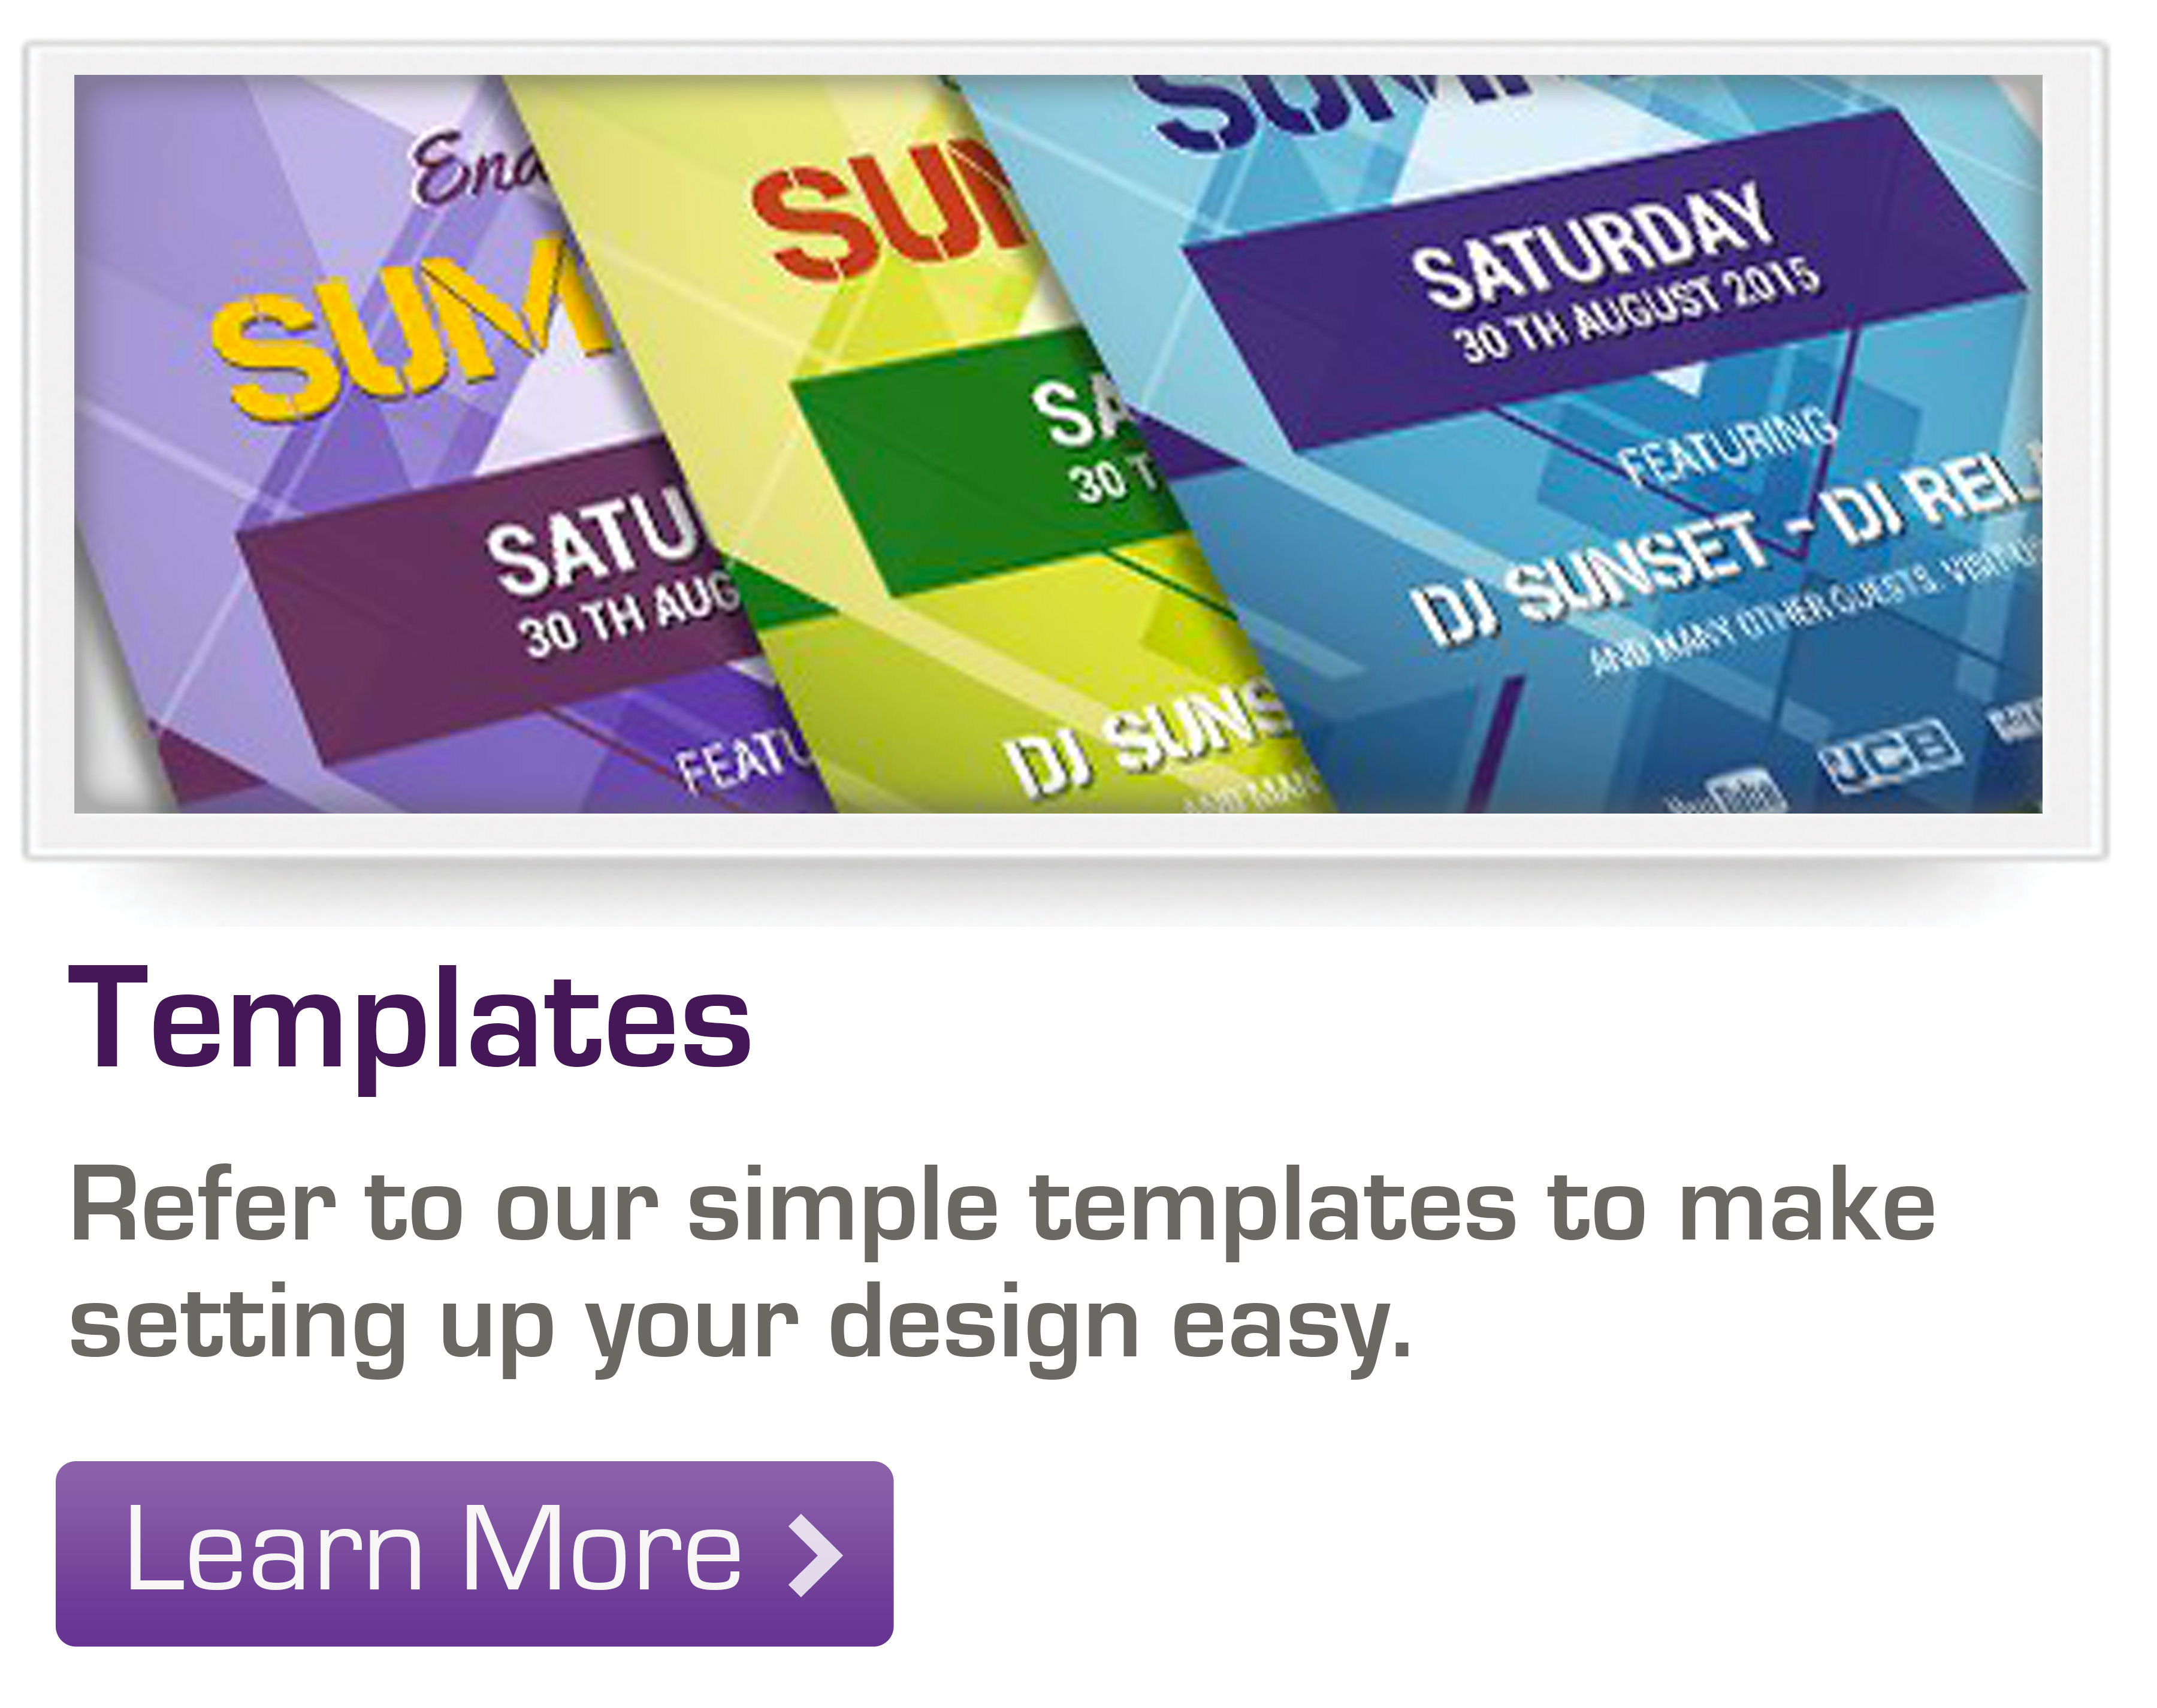 Refer to our simple templates to make setting up your design easy.